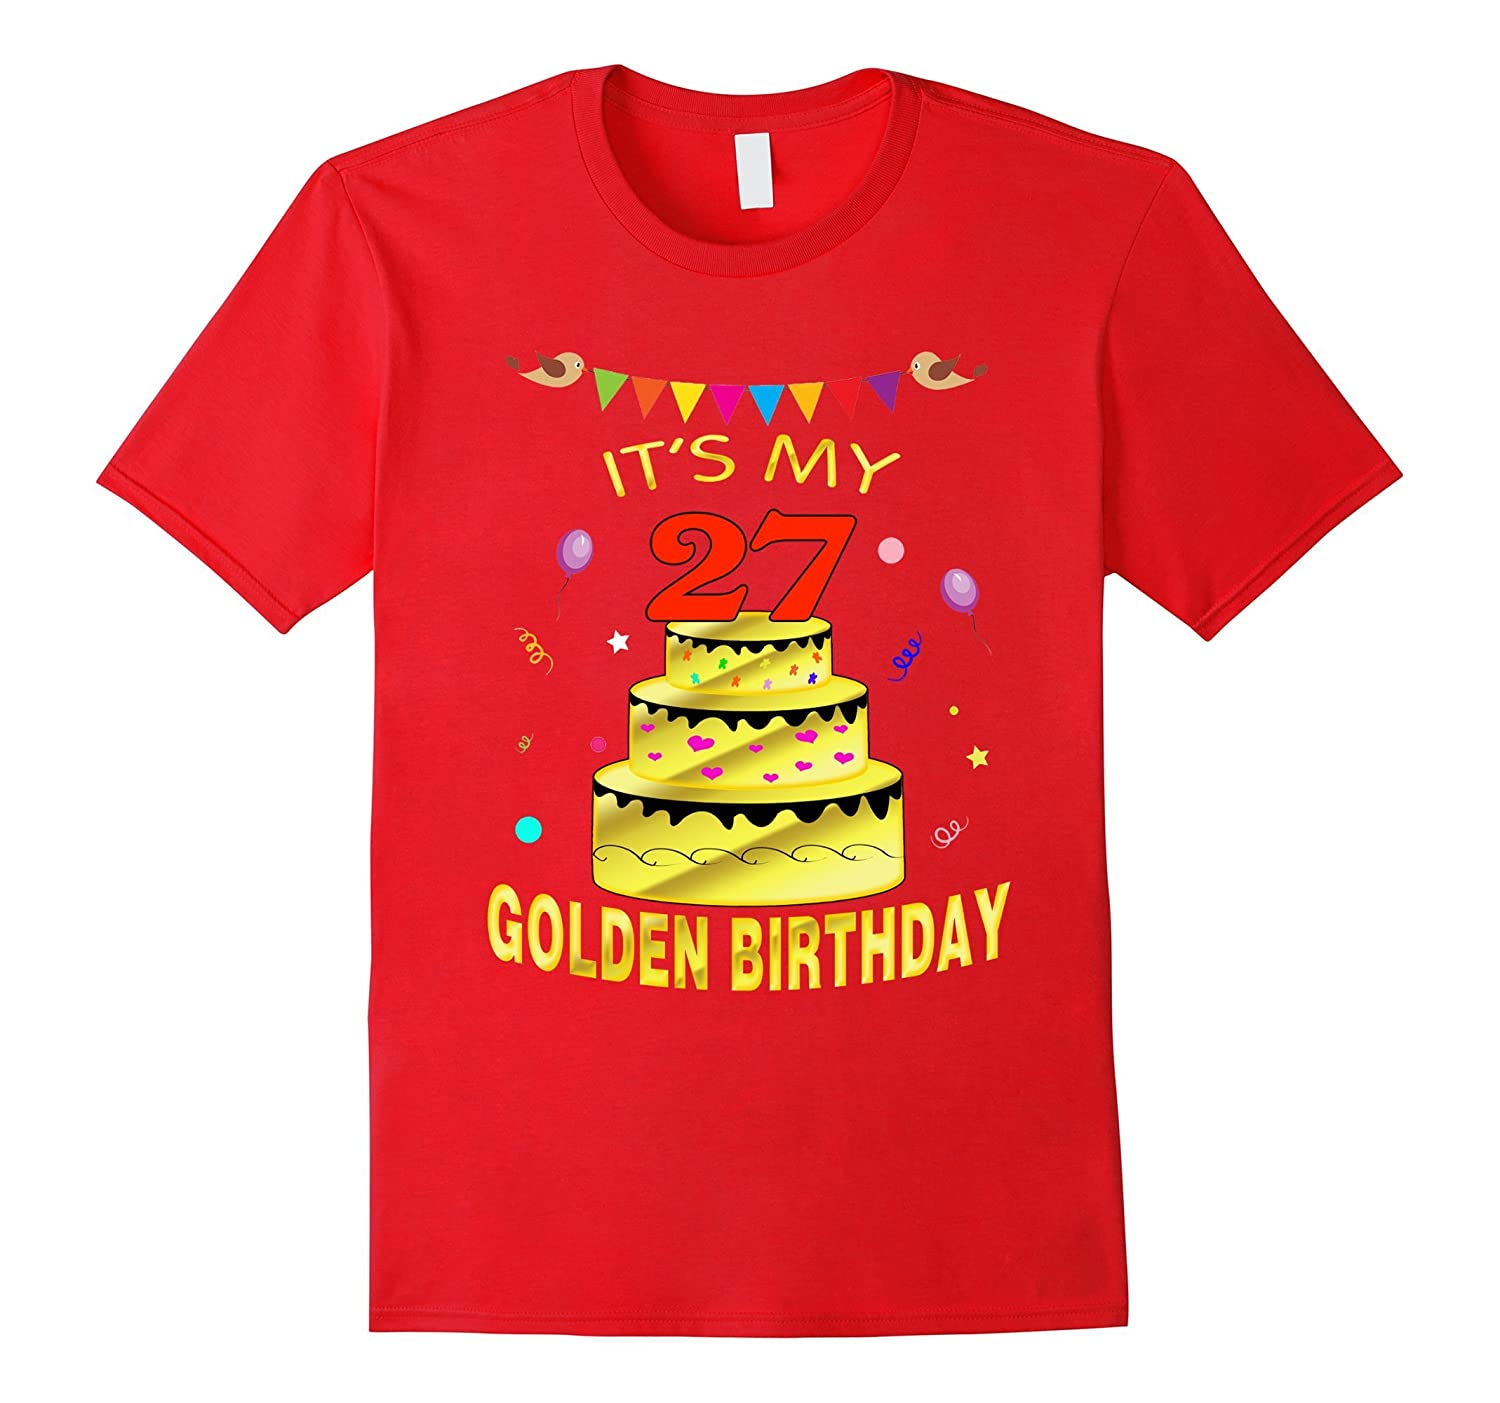 Vintage Golden Birthday Shirt It's My 27th Golden Birthday-FL